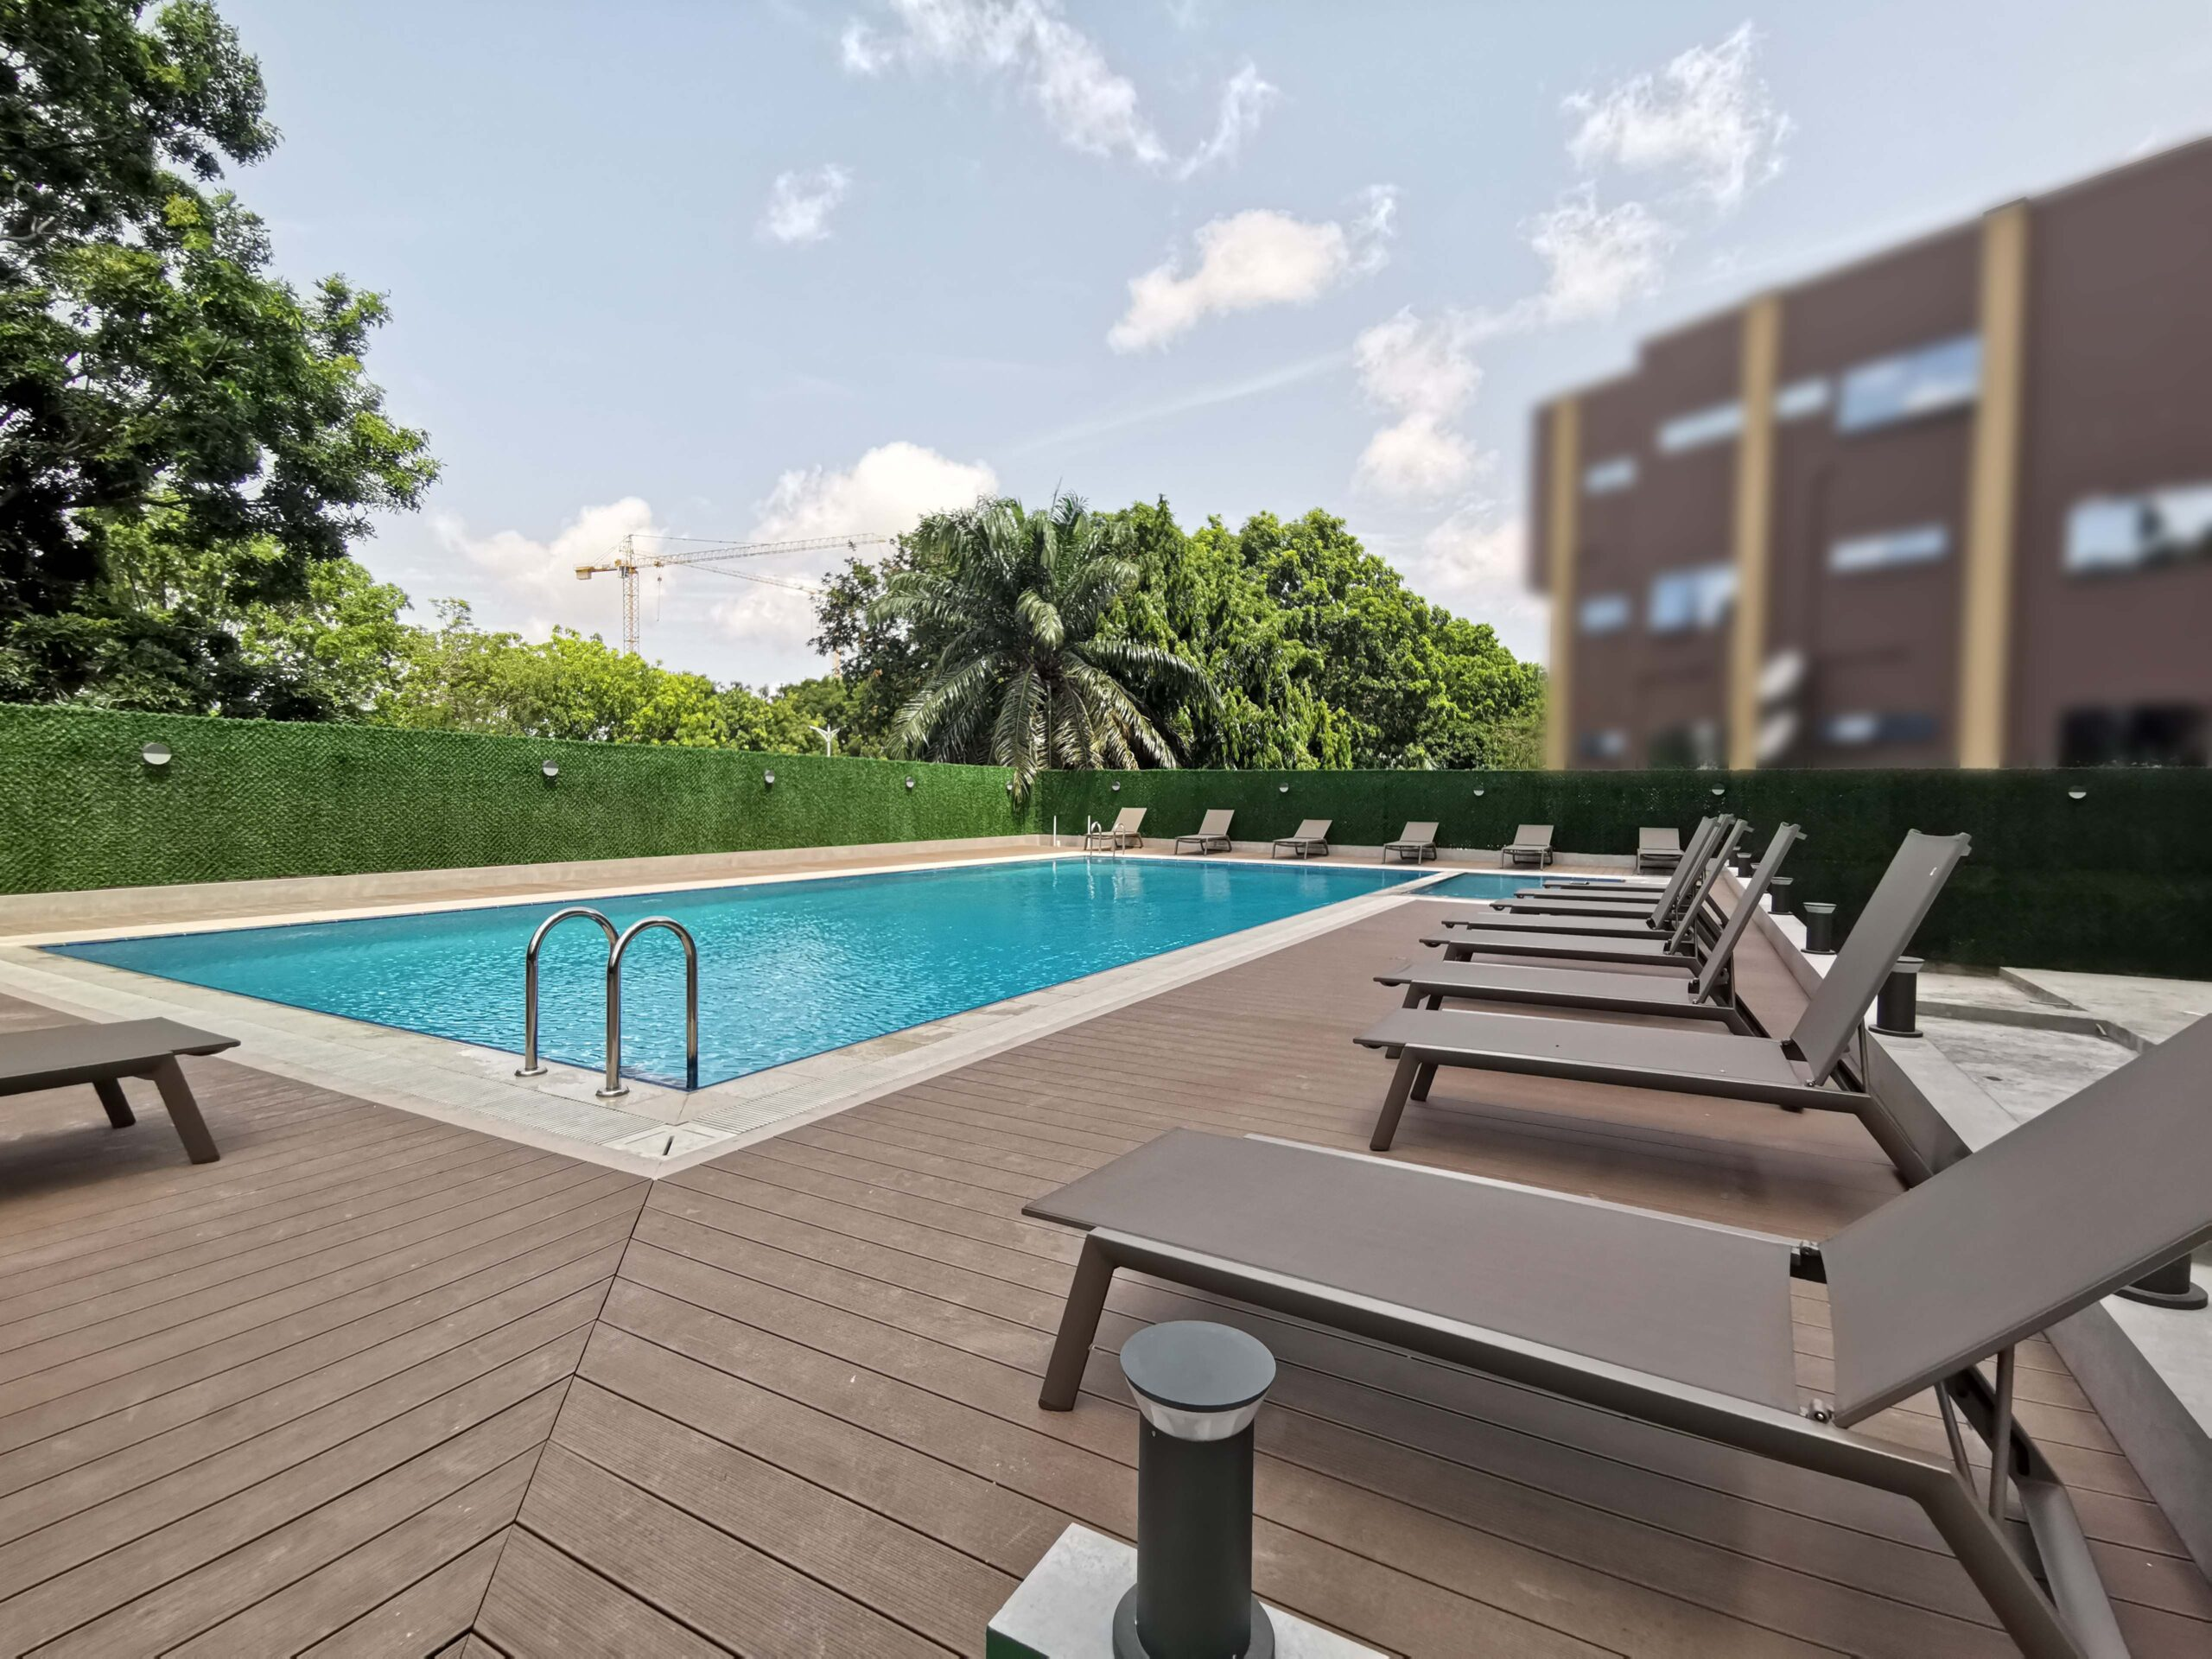 2 BEDROOM FURNISHED APARTMENT FOR RENT AT AIRPORT RESIDENTIAL AREA